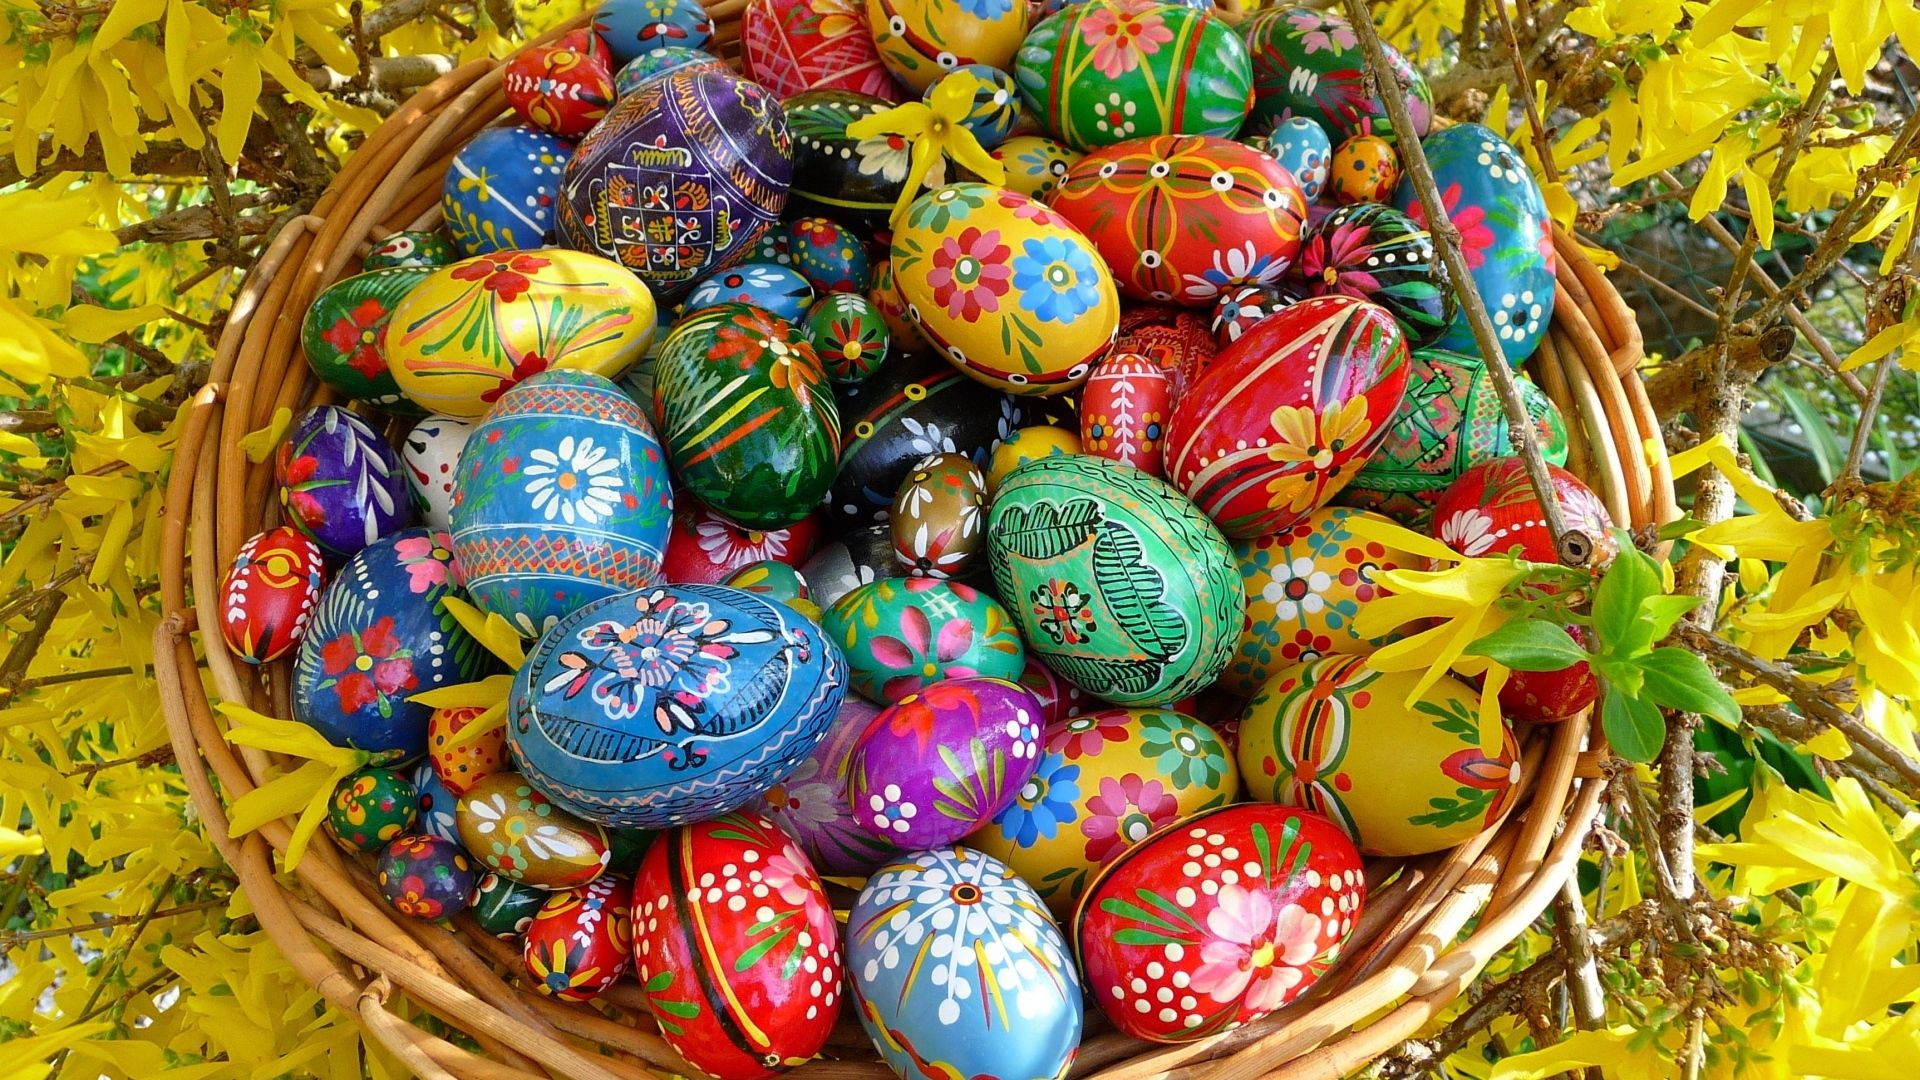 Download Wallpaper 1920x1080 Easter Eggs Basket Many Branches Flowering Full Hd 1080p Hd Backgro Easter Wallpaper Easter Egg Decorating Easter Egg Designs